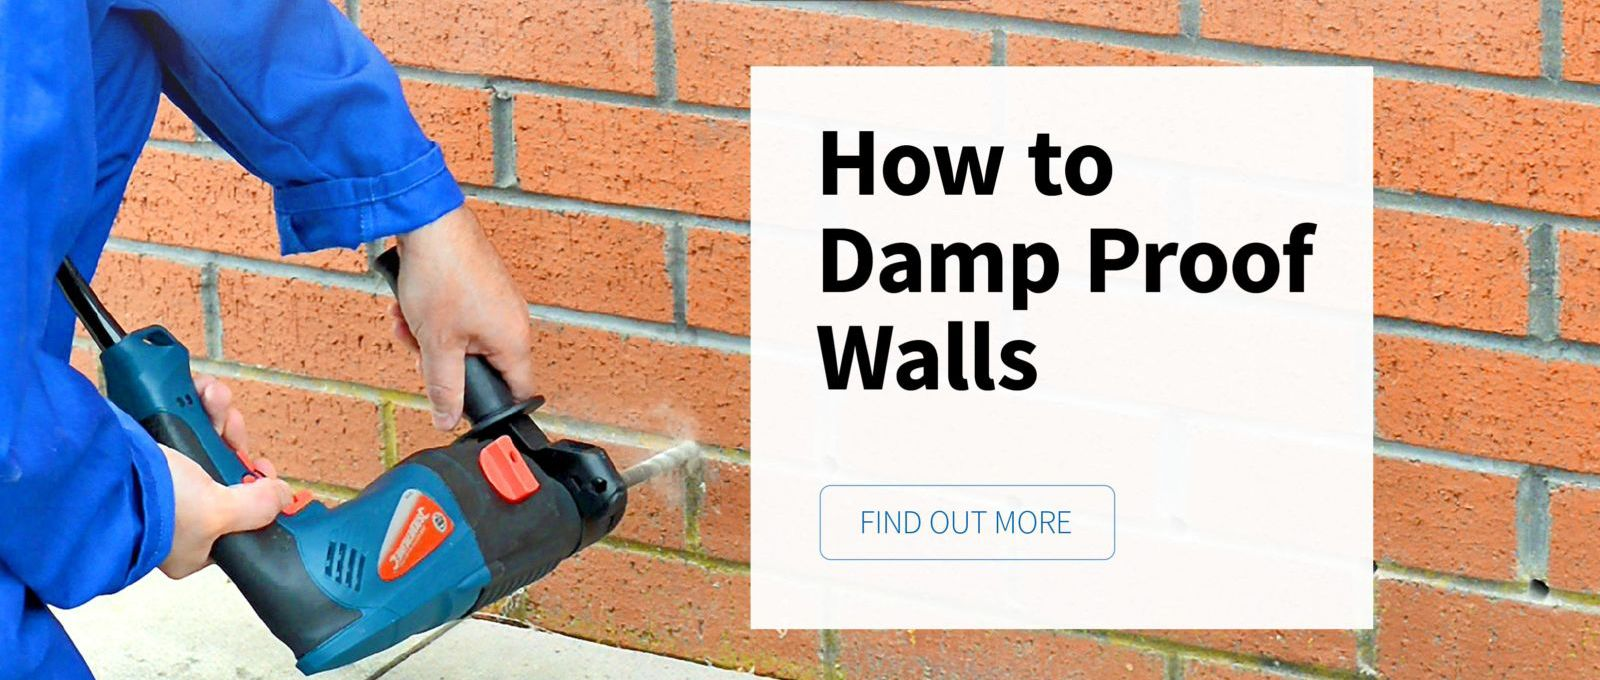 Wall Ties Damp Proofing And Basement Waterproofing